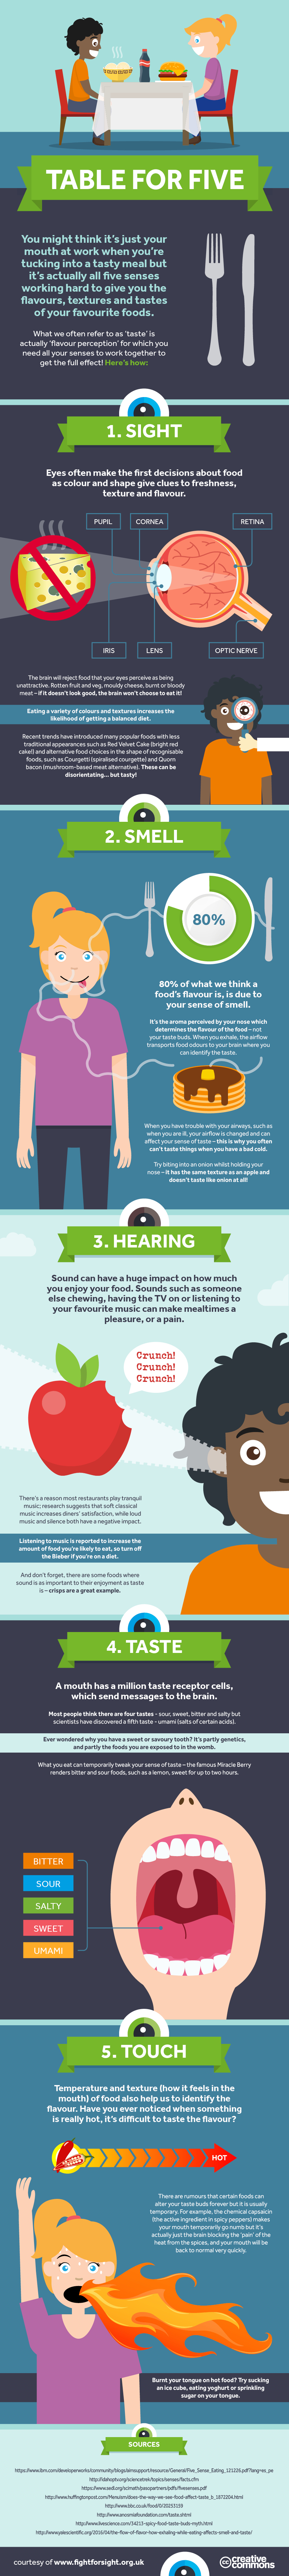 Table For Five - How the 5 Senses Work Together When Eating